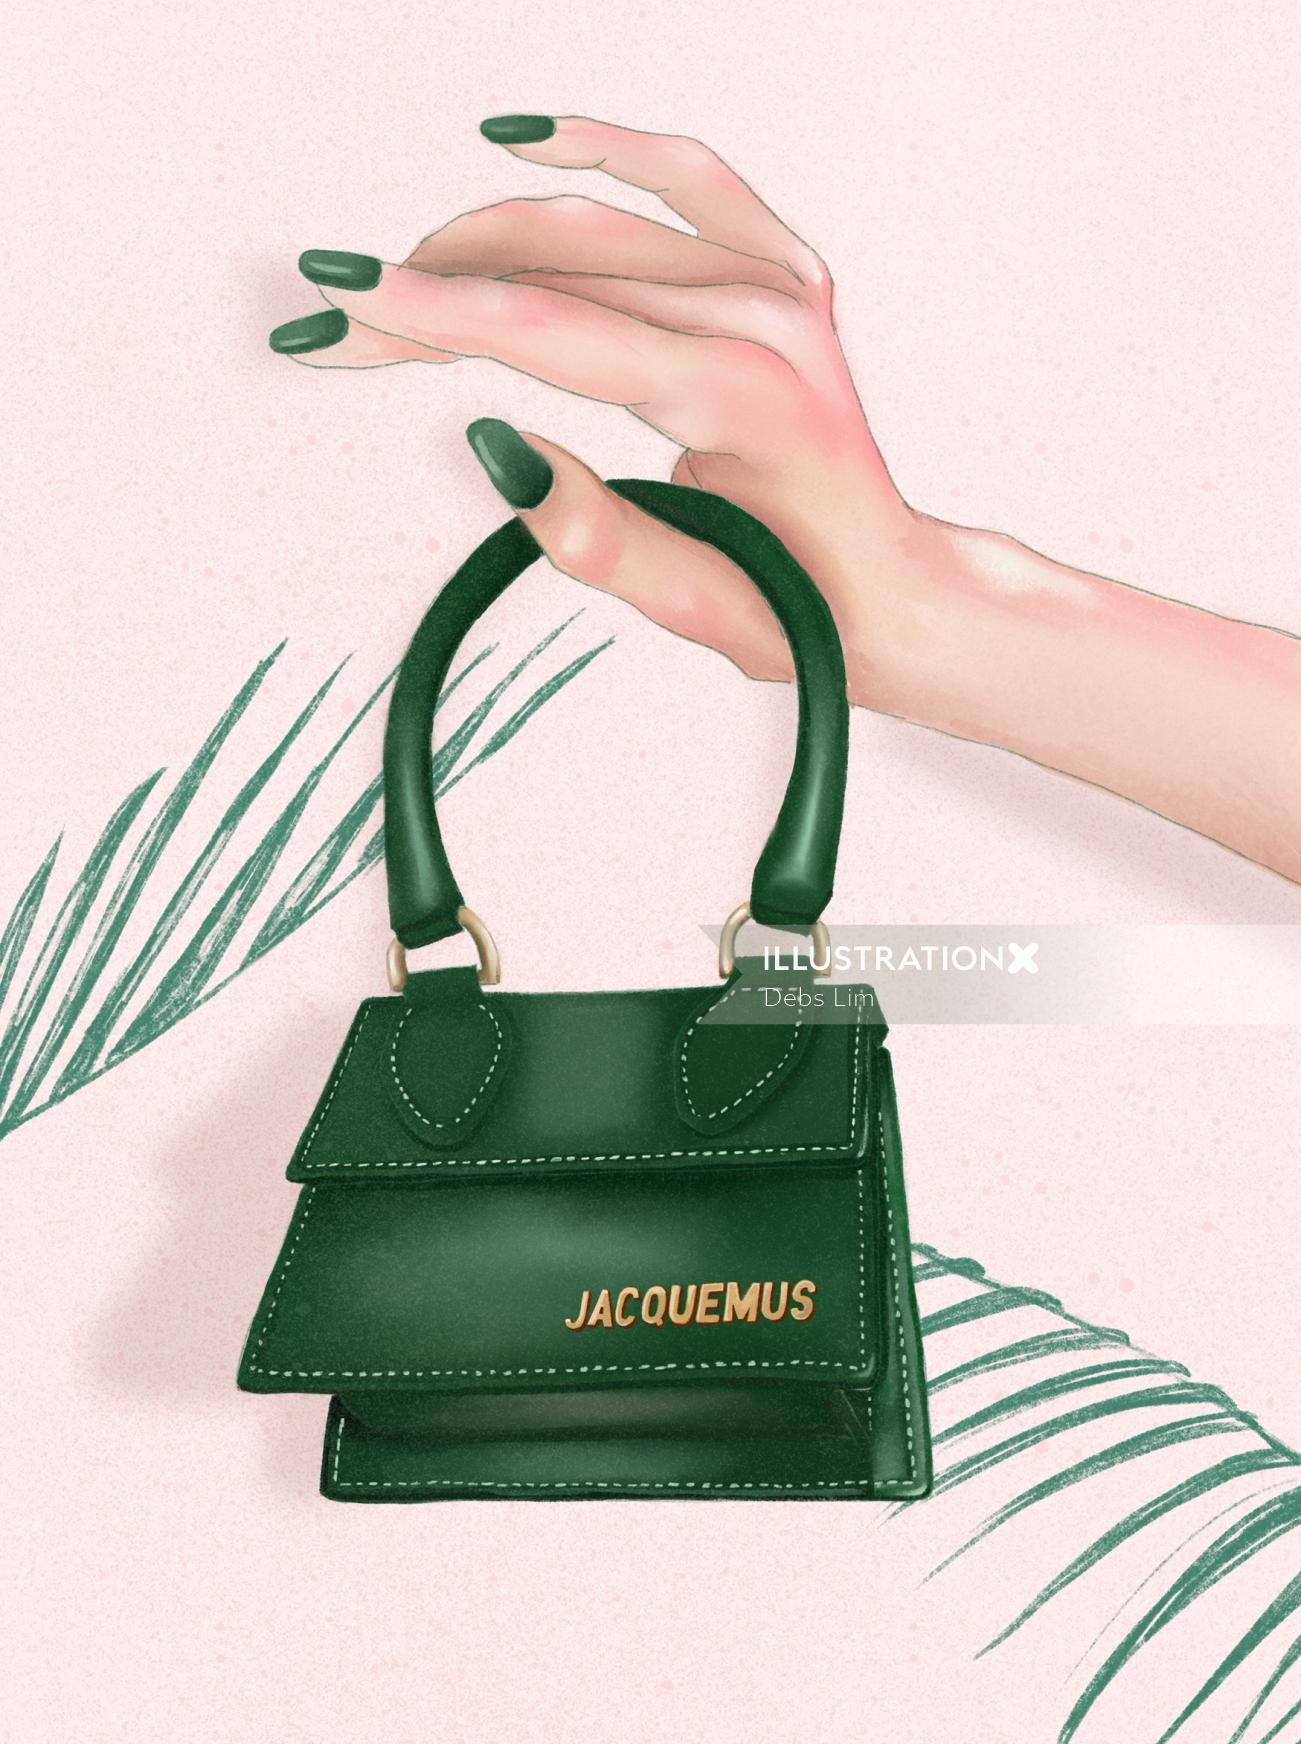 Fashion illustration of a Jacquemus mini bag